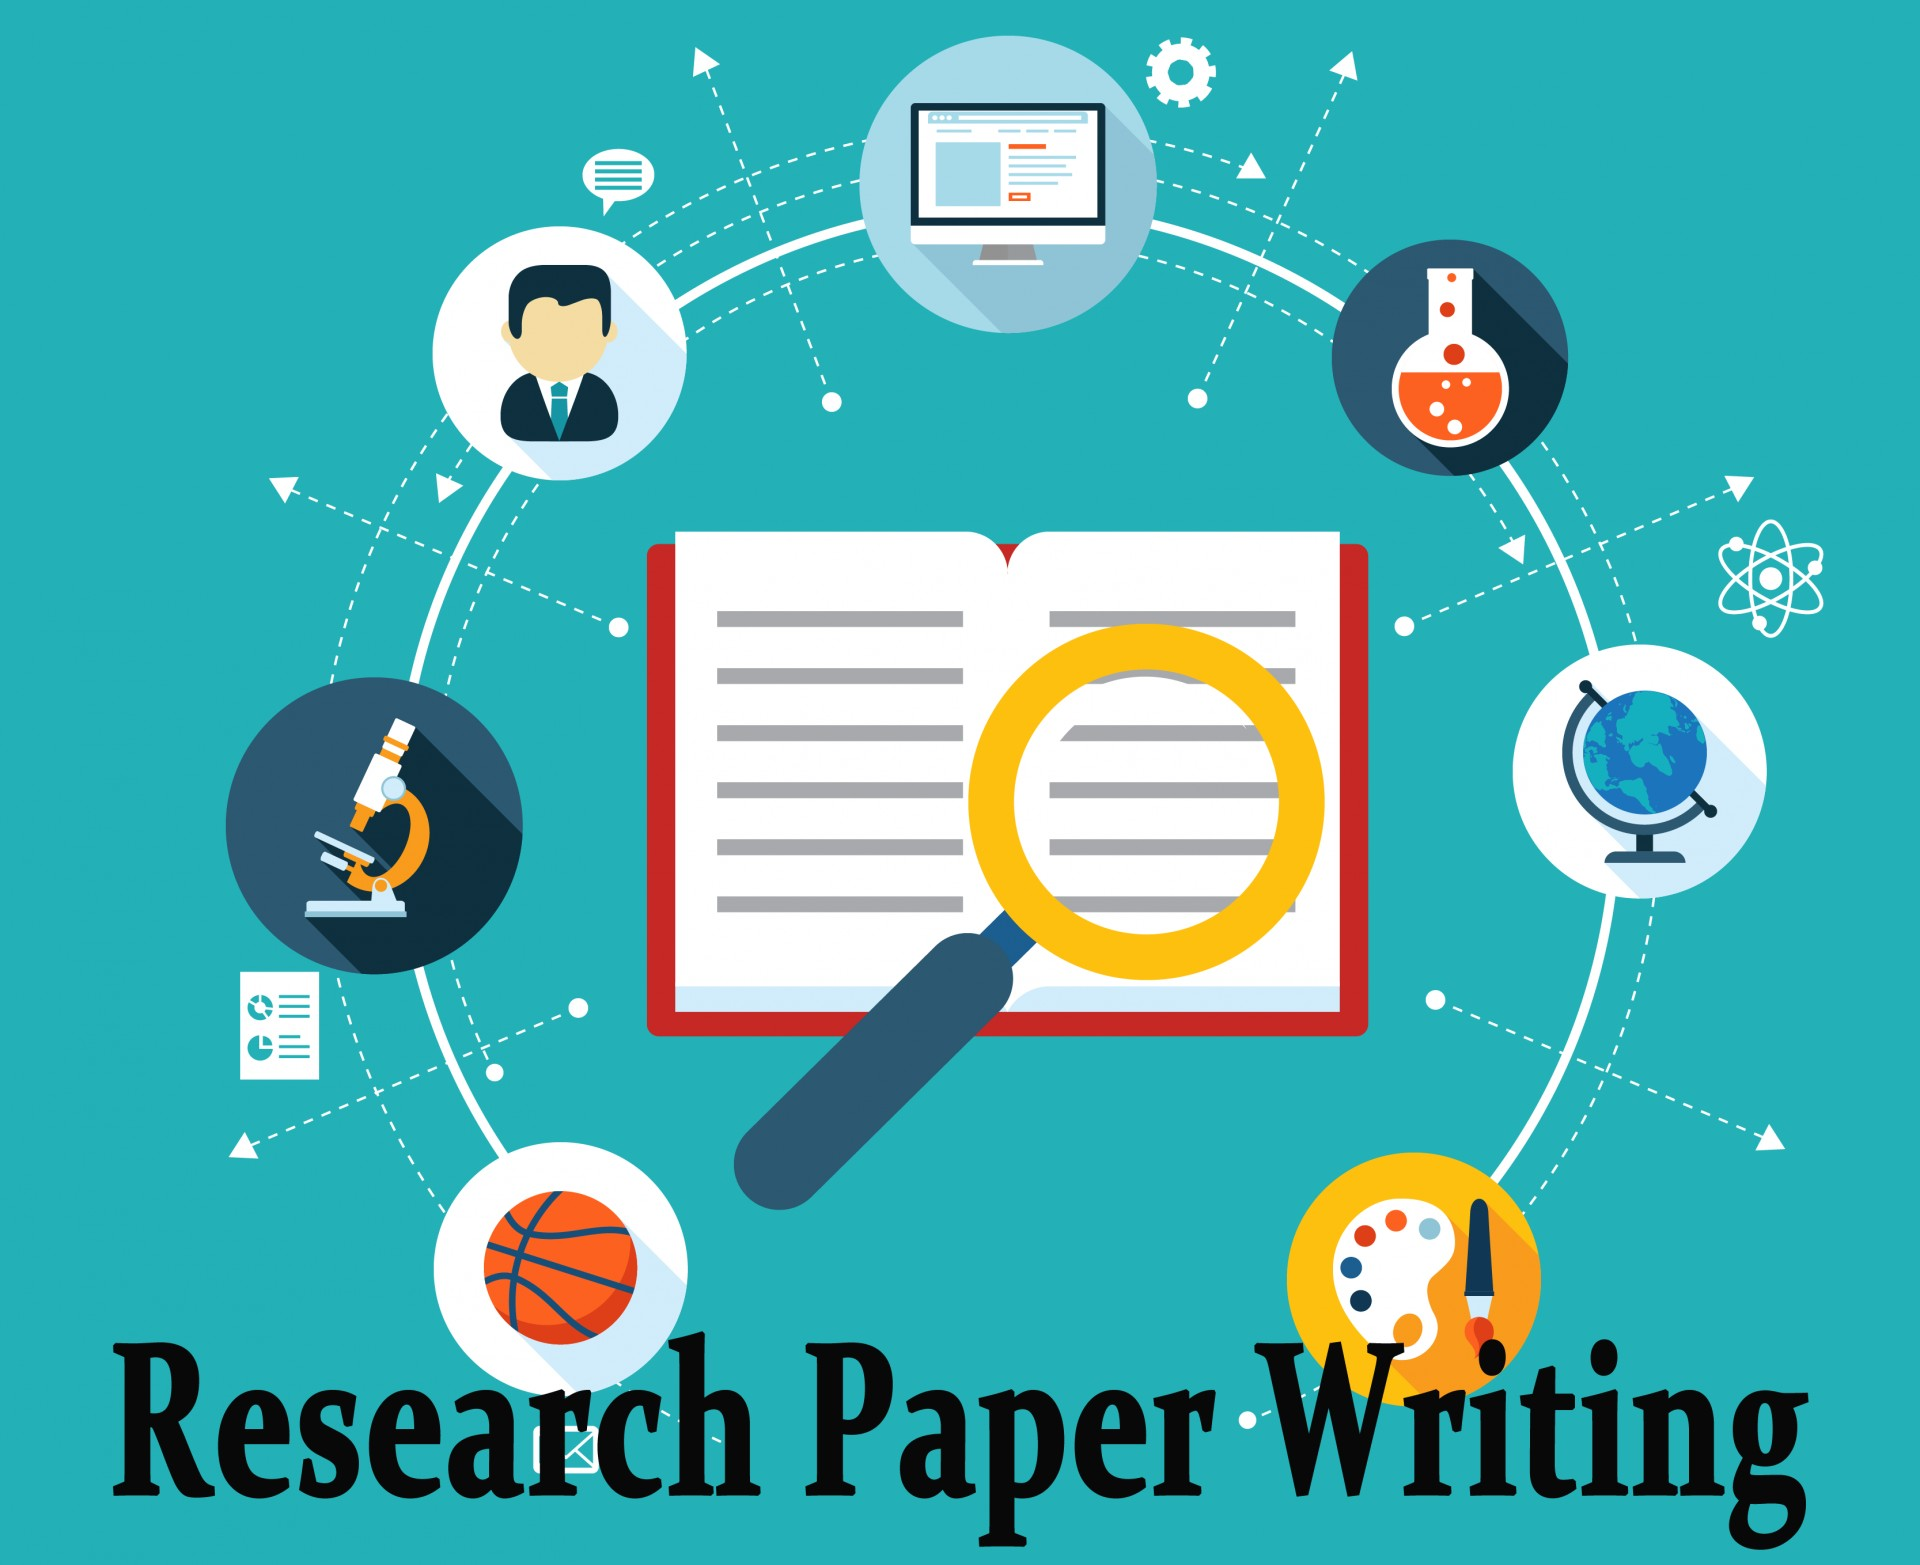 001 503 Effective Research Paper Help With Beautiful Writing 1920